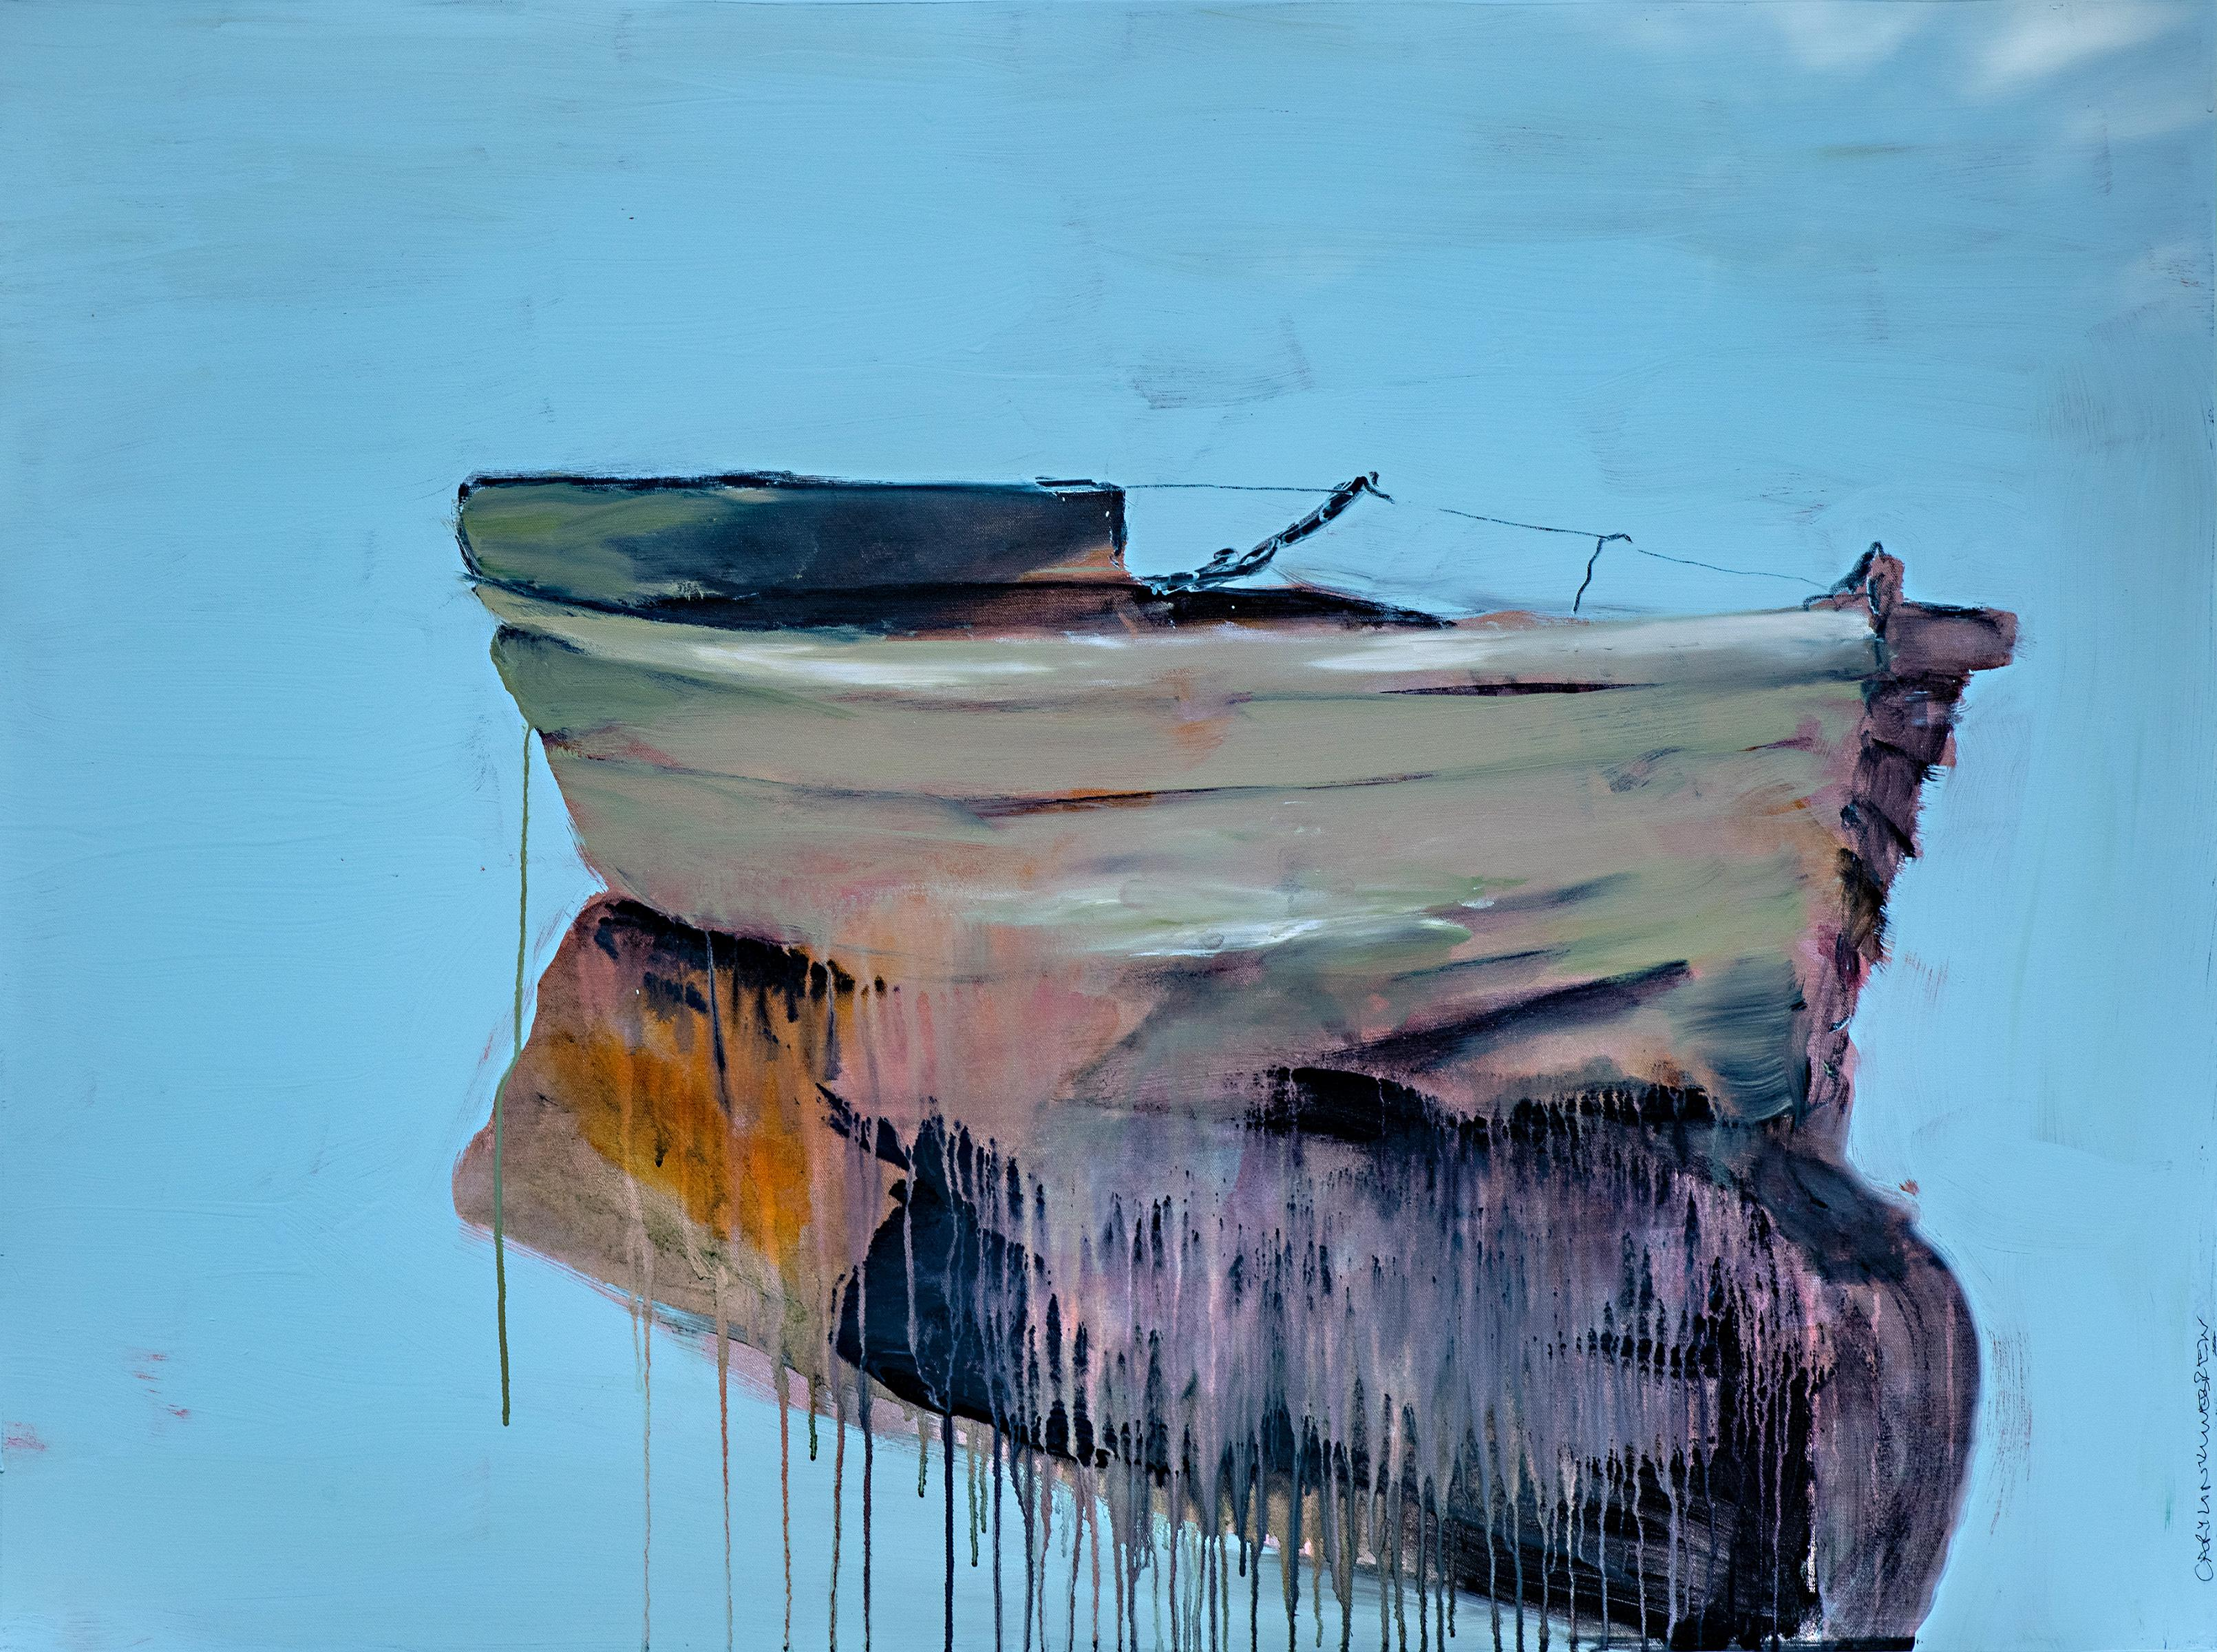 Secret Heart by Carylon Killebrew Large Contemporary Boat Oil on Canvas